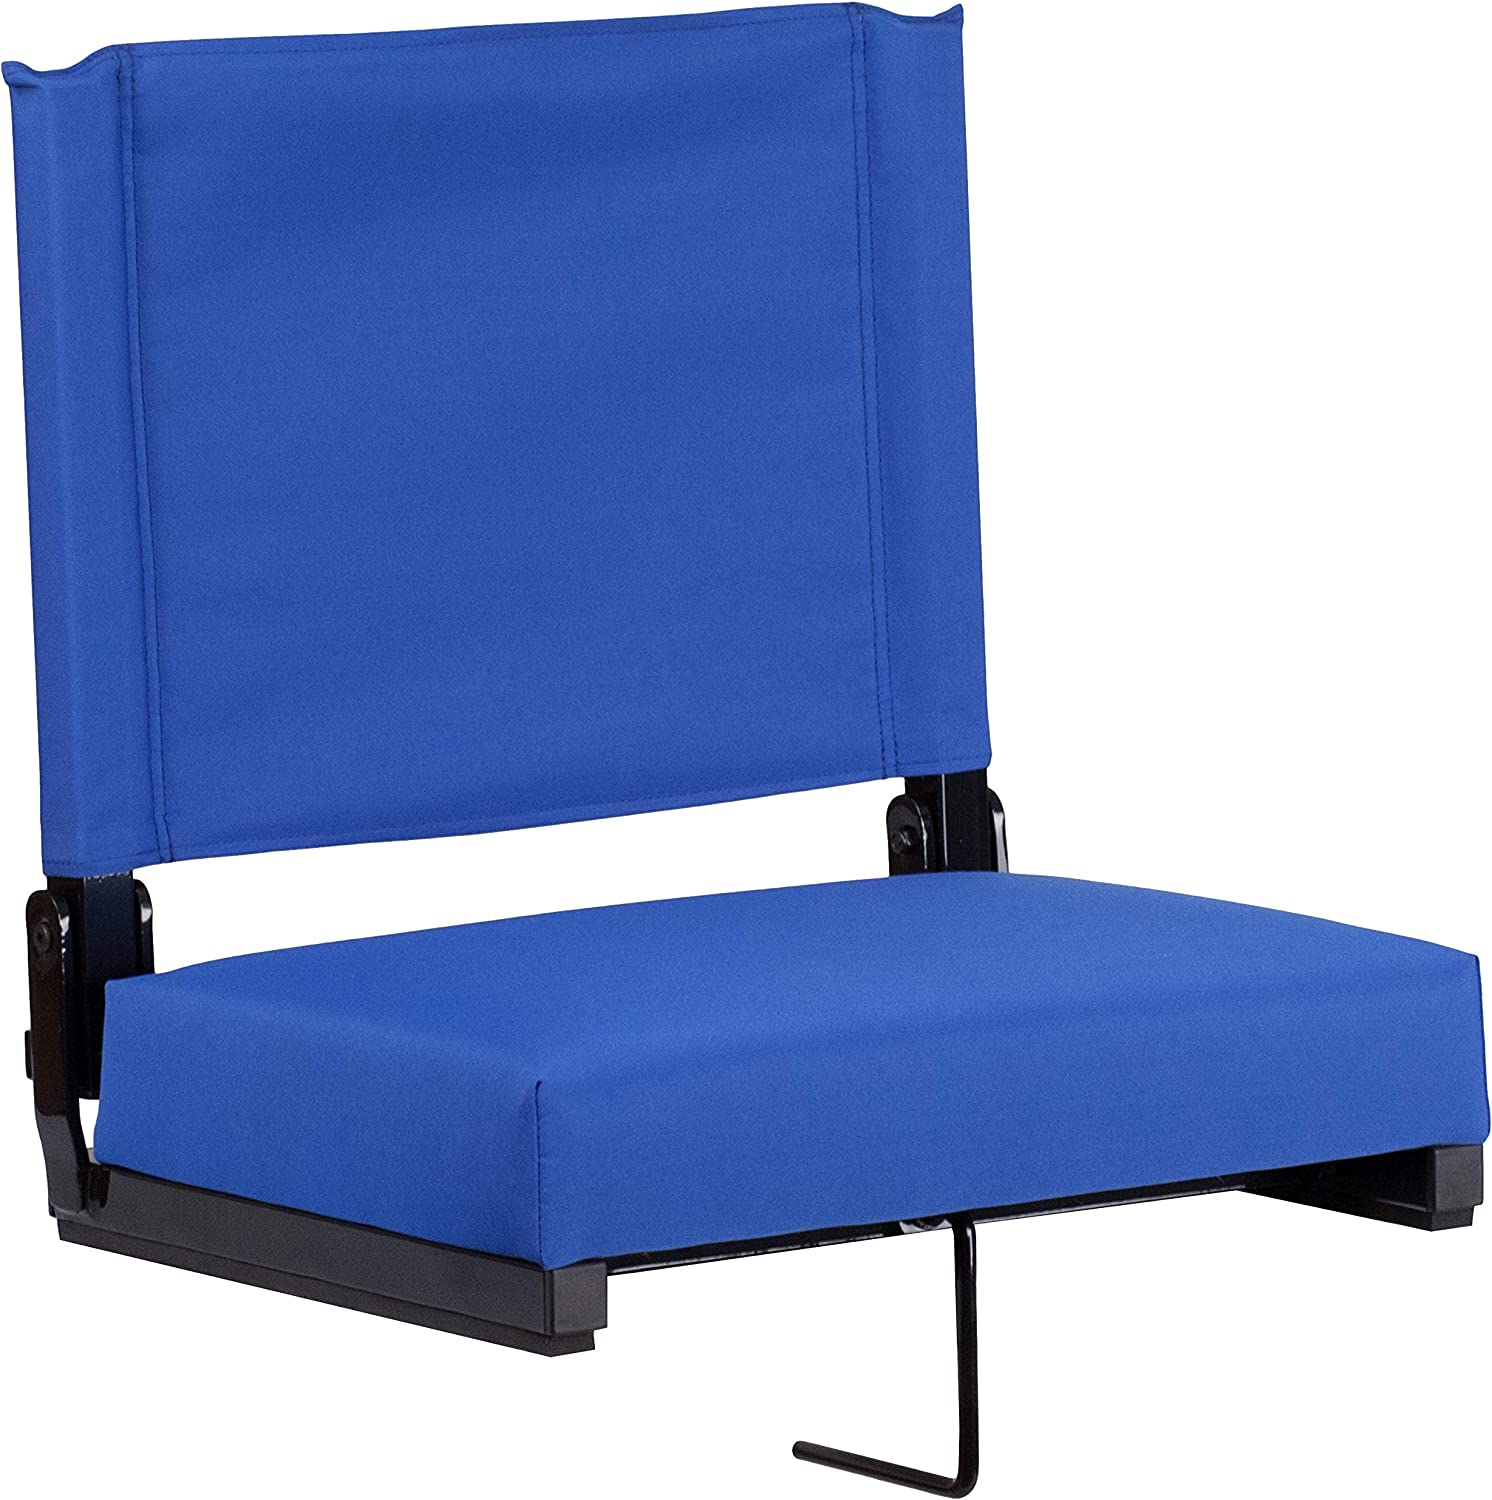 Flash Furniture Game Day Seats by Flash with UltraPadded Seat, blueee